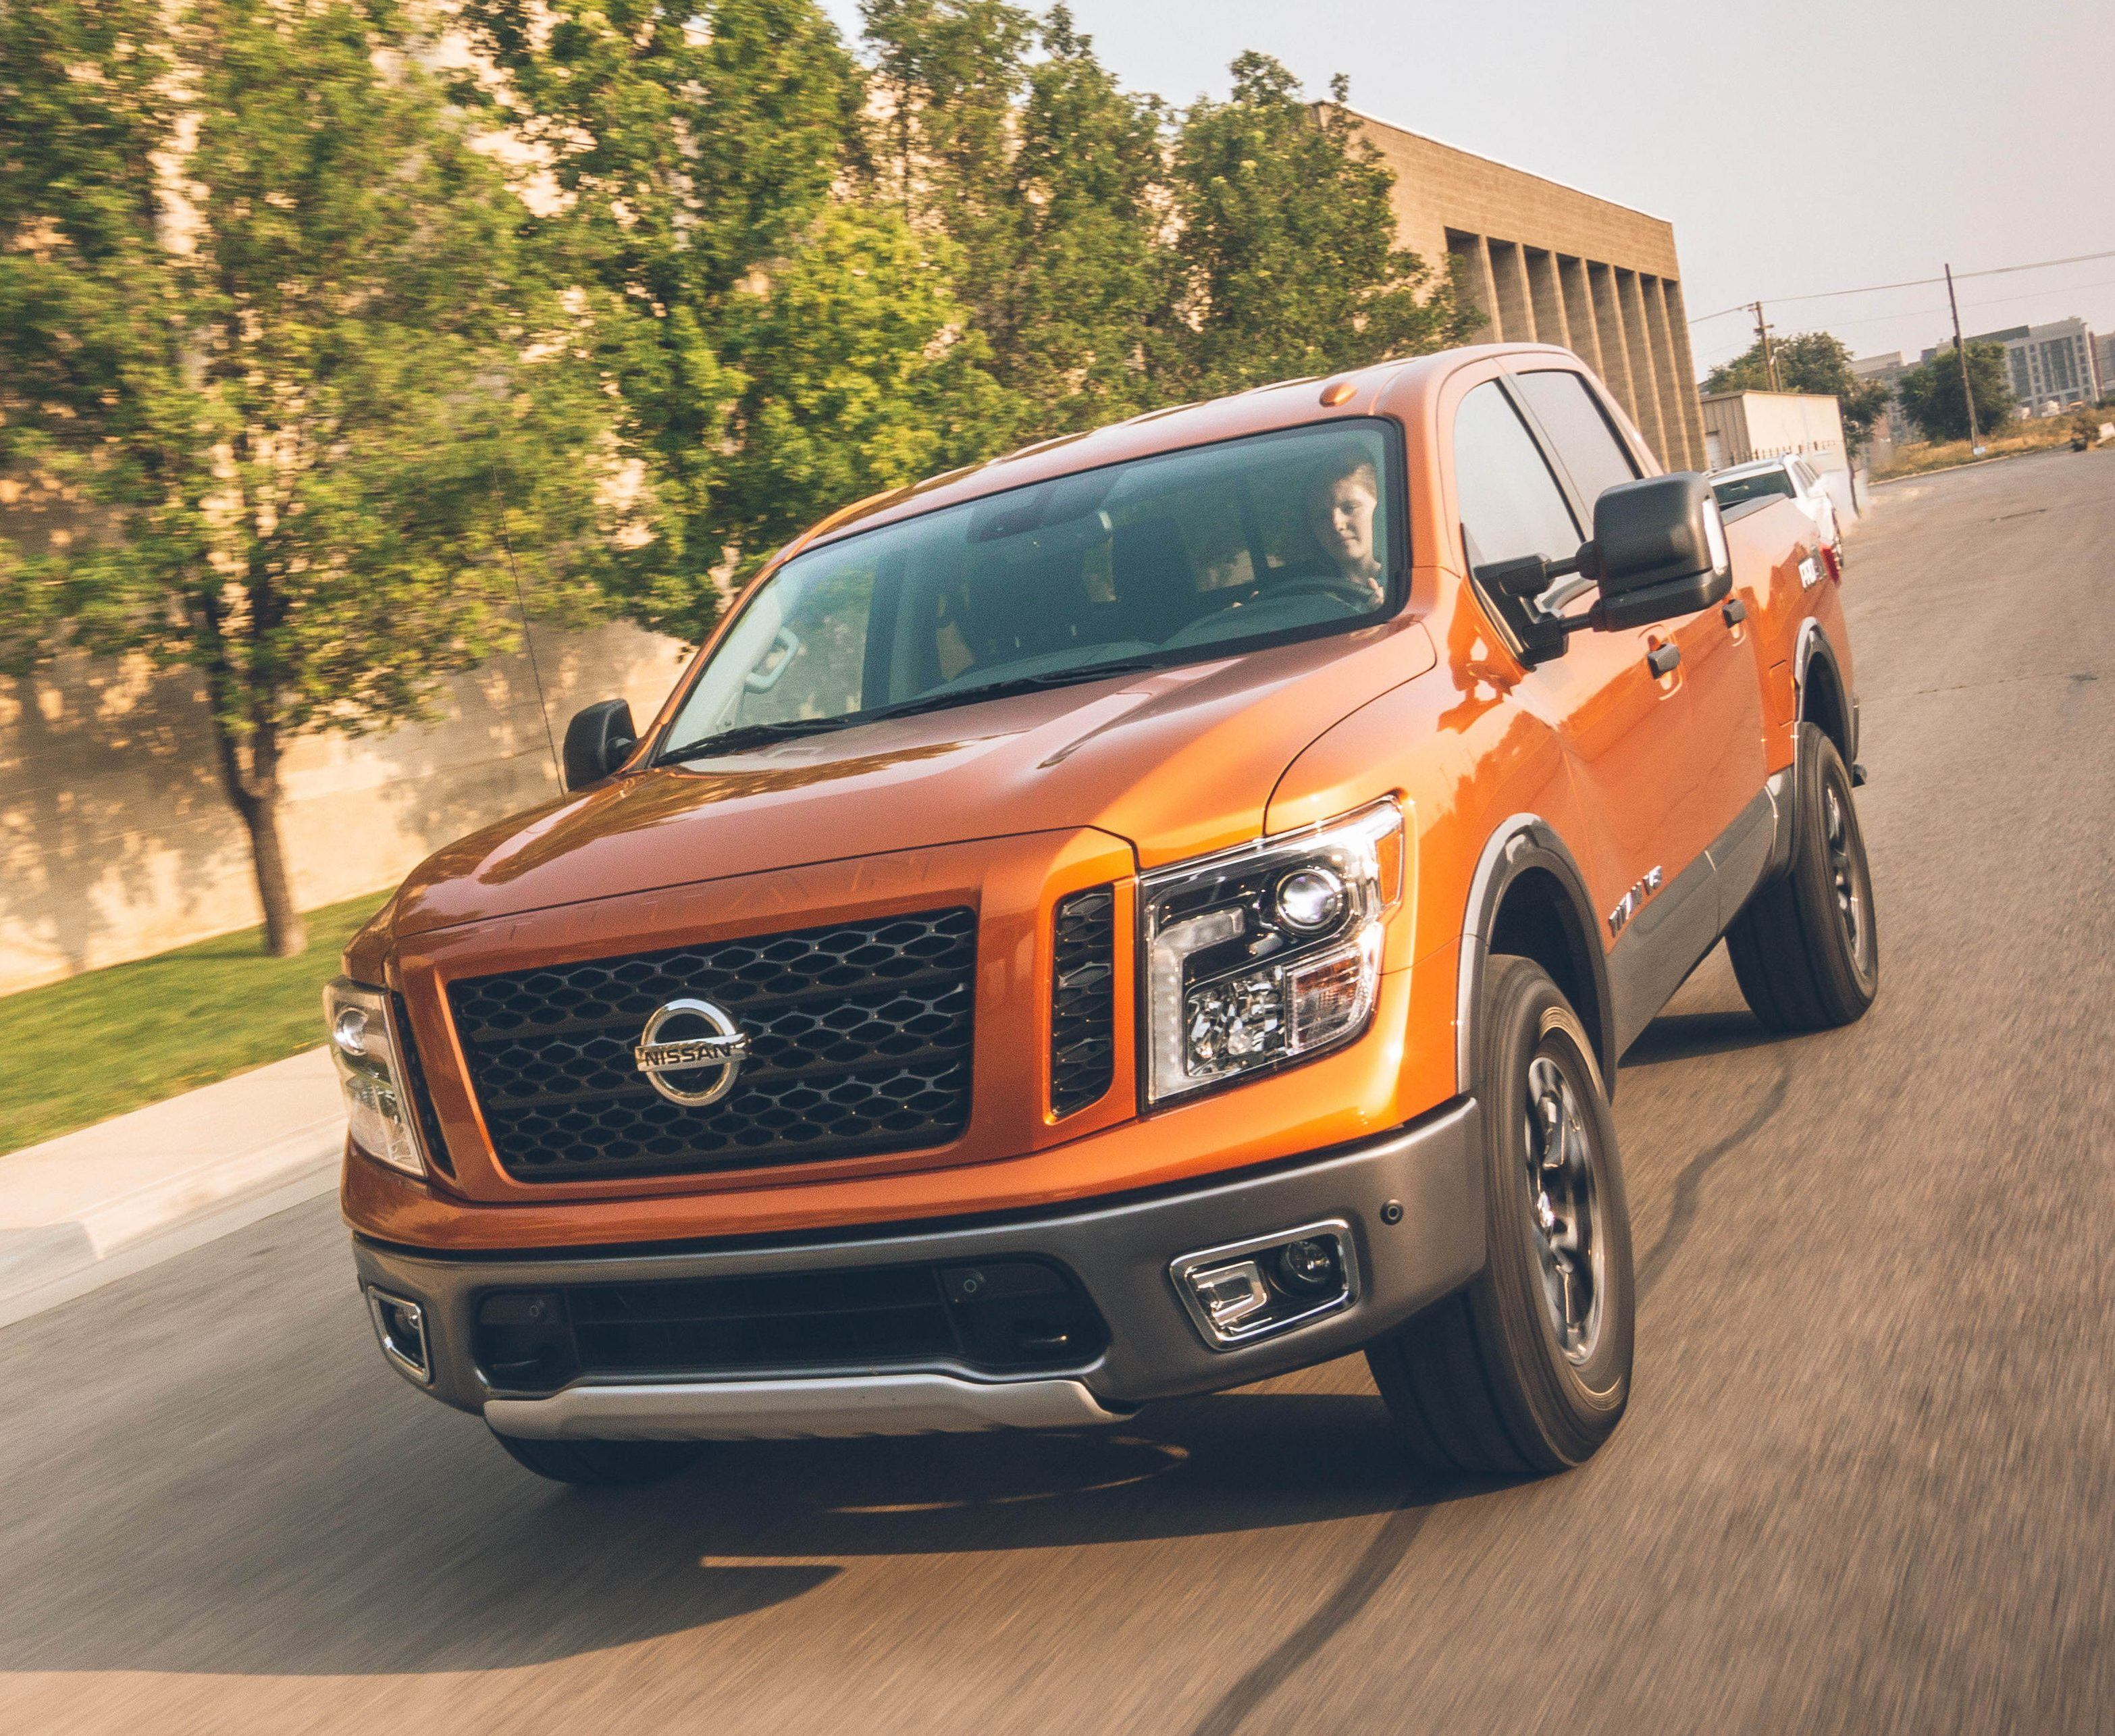 "All 2019 TITAN and TITAN XD models are covered by Nissan's ""America's Best Truck Warranty"" – featuring bumper-to-bumper coverage of 5-years/100,000-miles, whichever comes first. Vehicles covered by the new warranty, which includes basic and powertrain coverage, include all TITAN V8 gasoline-powered models and diesel and V8 gasoline-powered 2019 TITAN XD models."